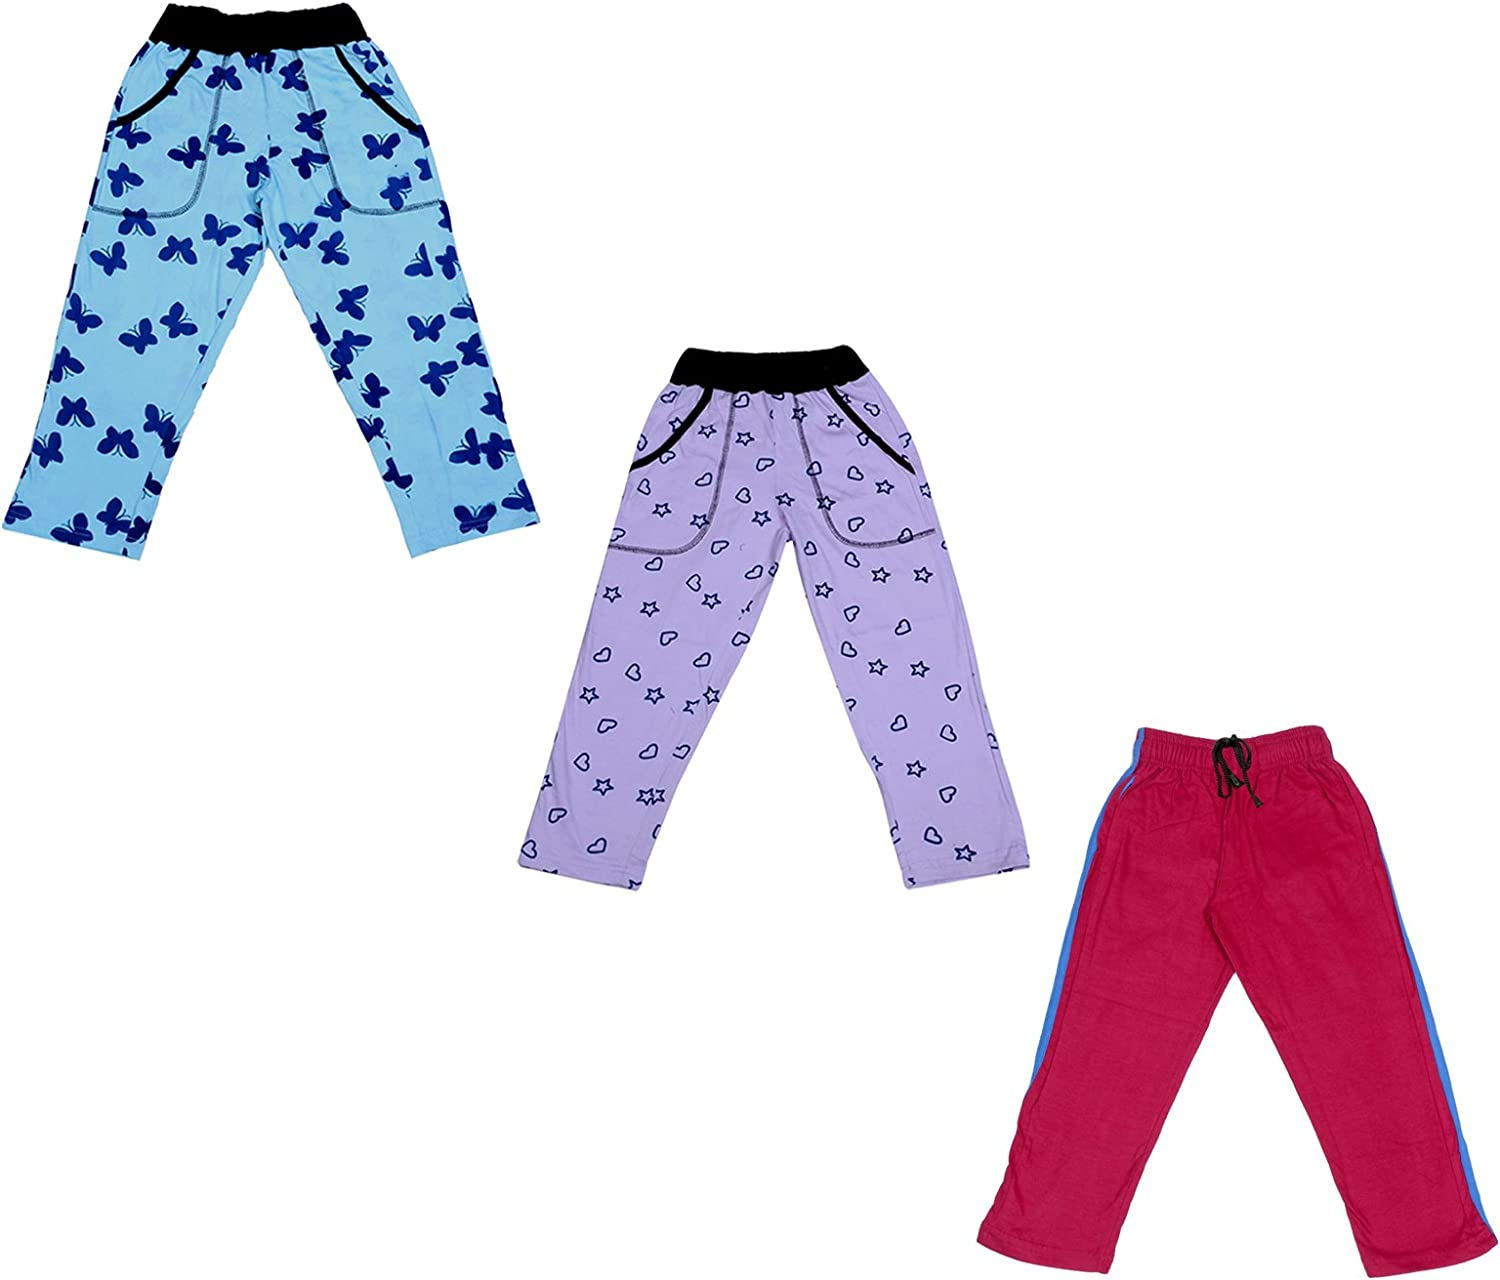 IndiWeaves Girls Premium Cotton Full Length Lower//Track Pants//Pyjamas with 2 Open Pockets Pack of 3